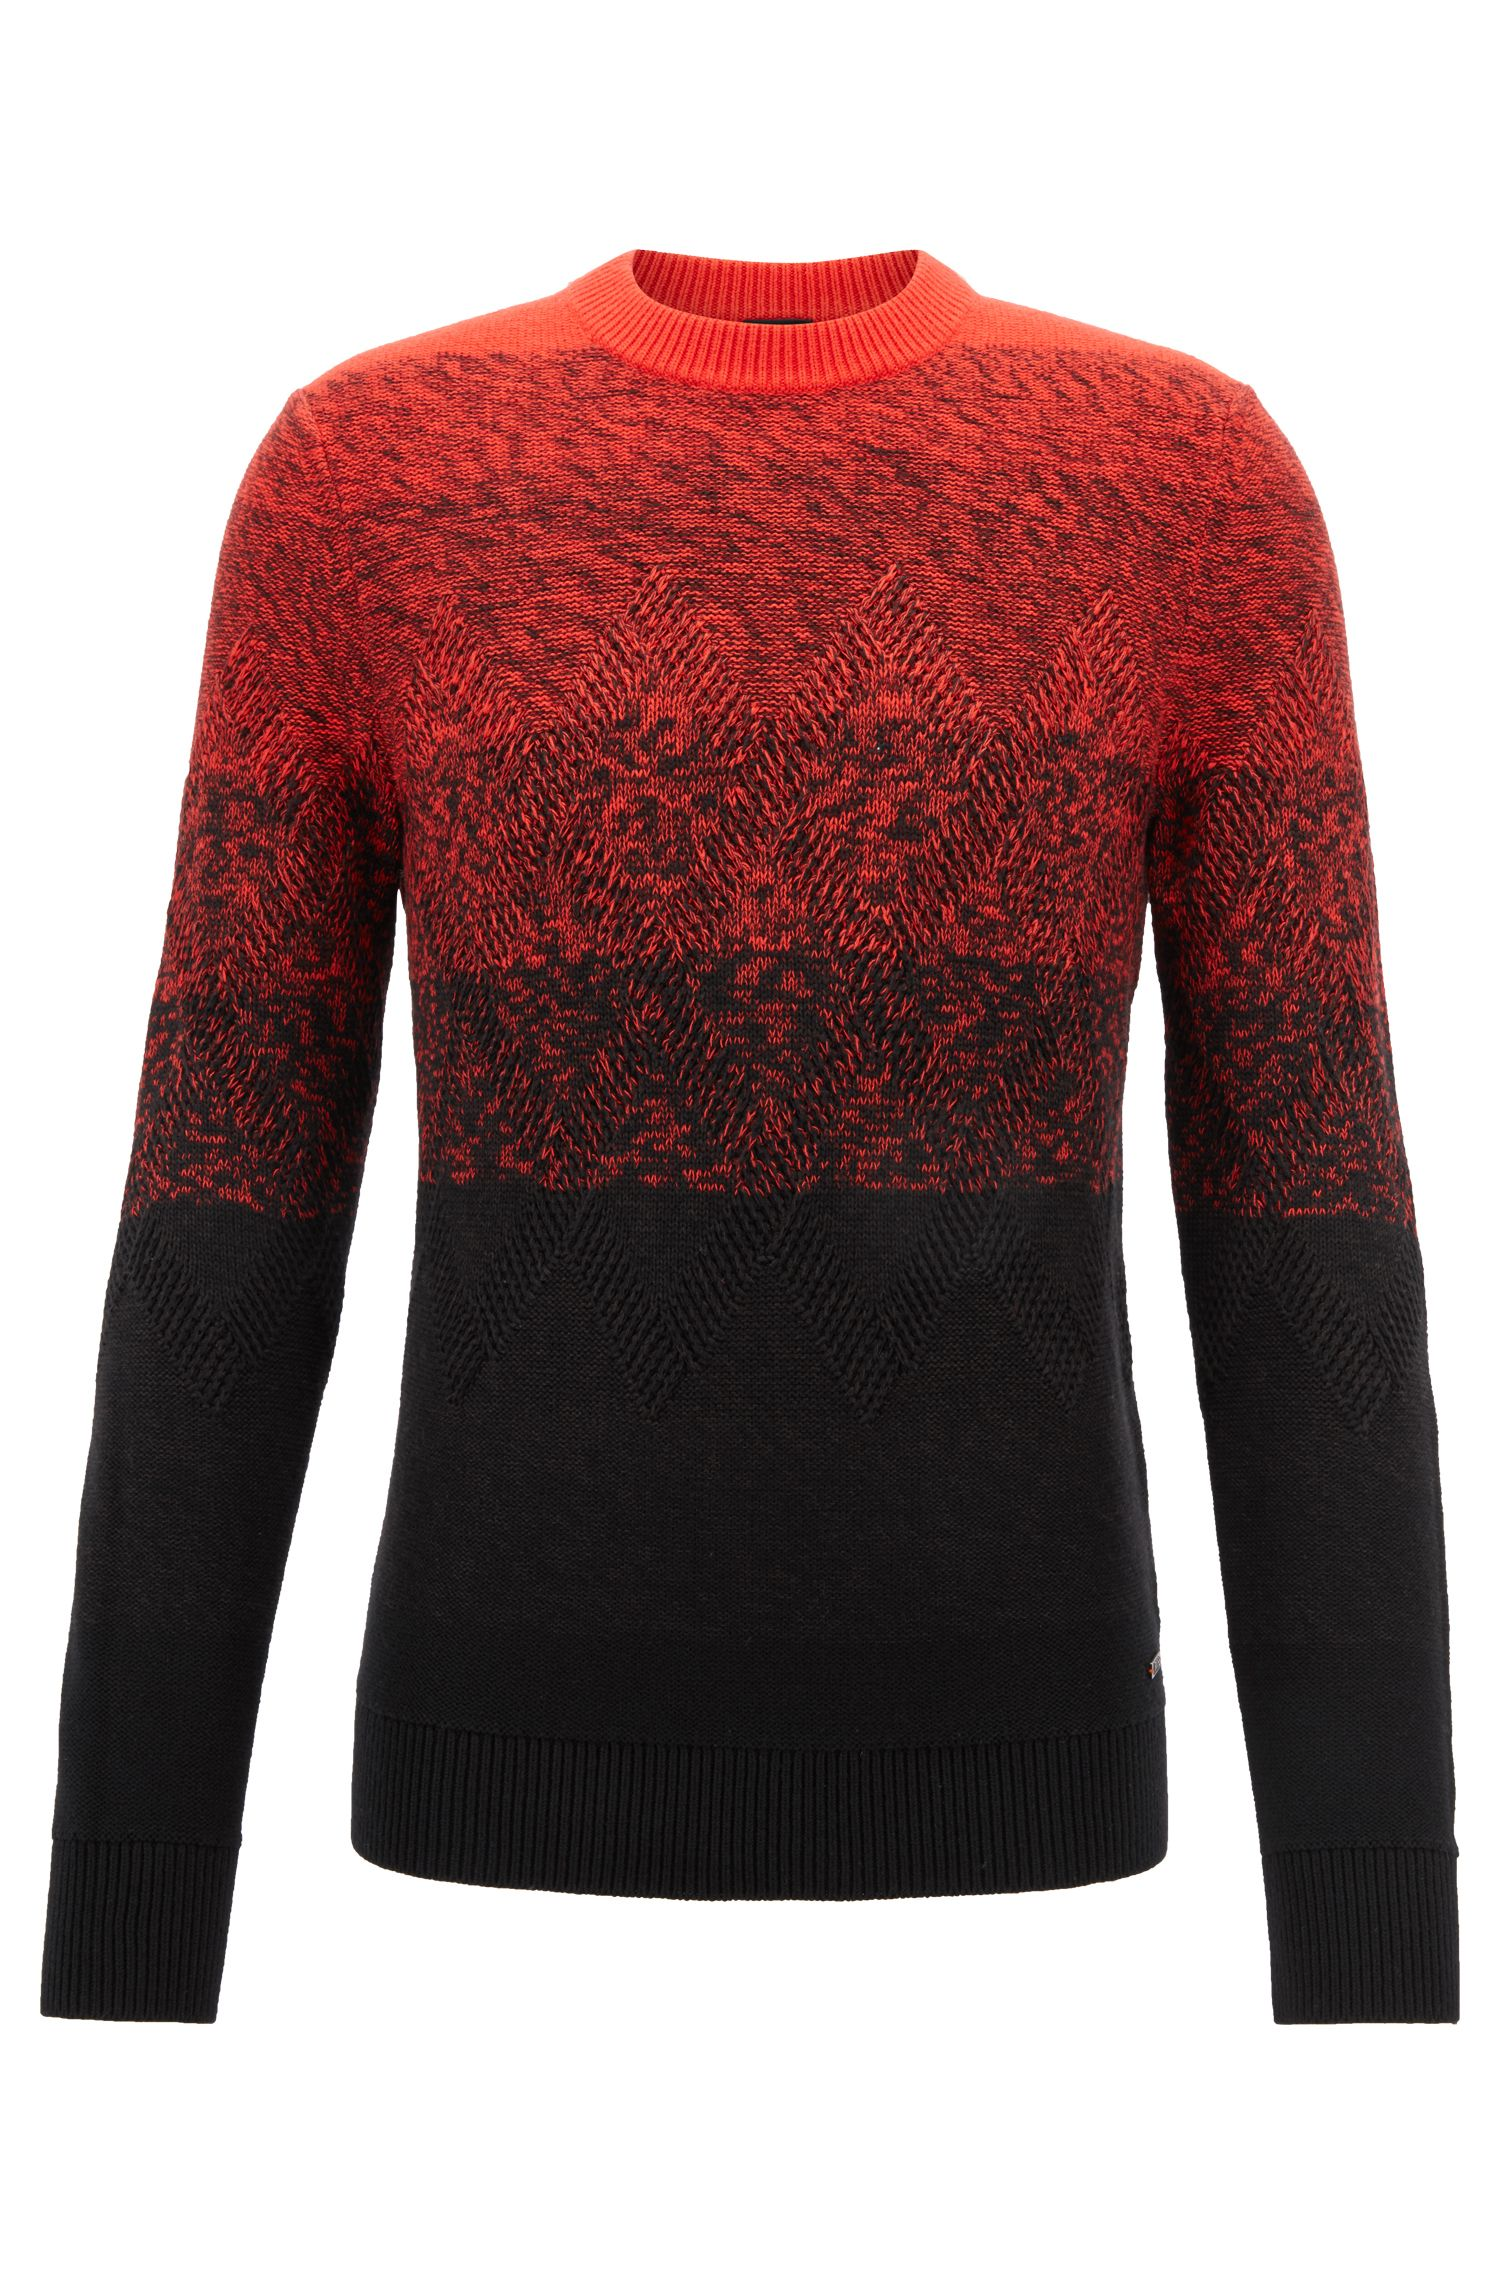 Dégradé sweater with Aran-knit detailing, Black